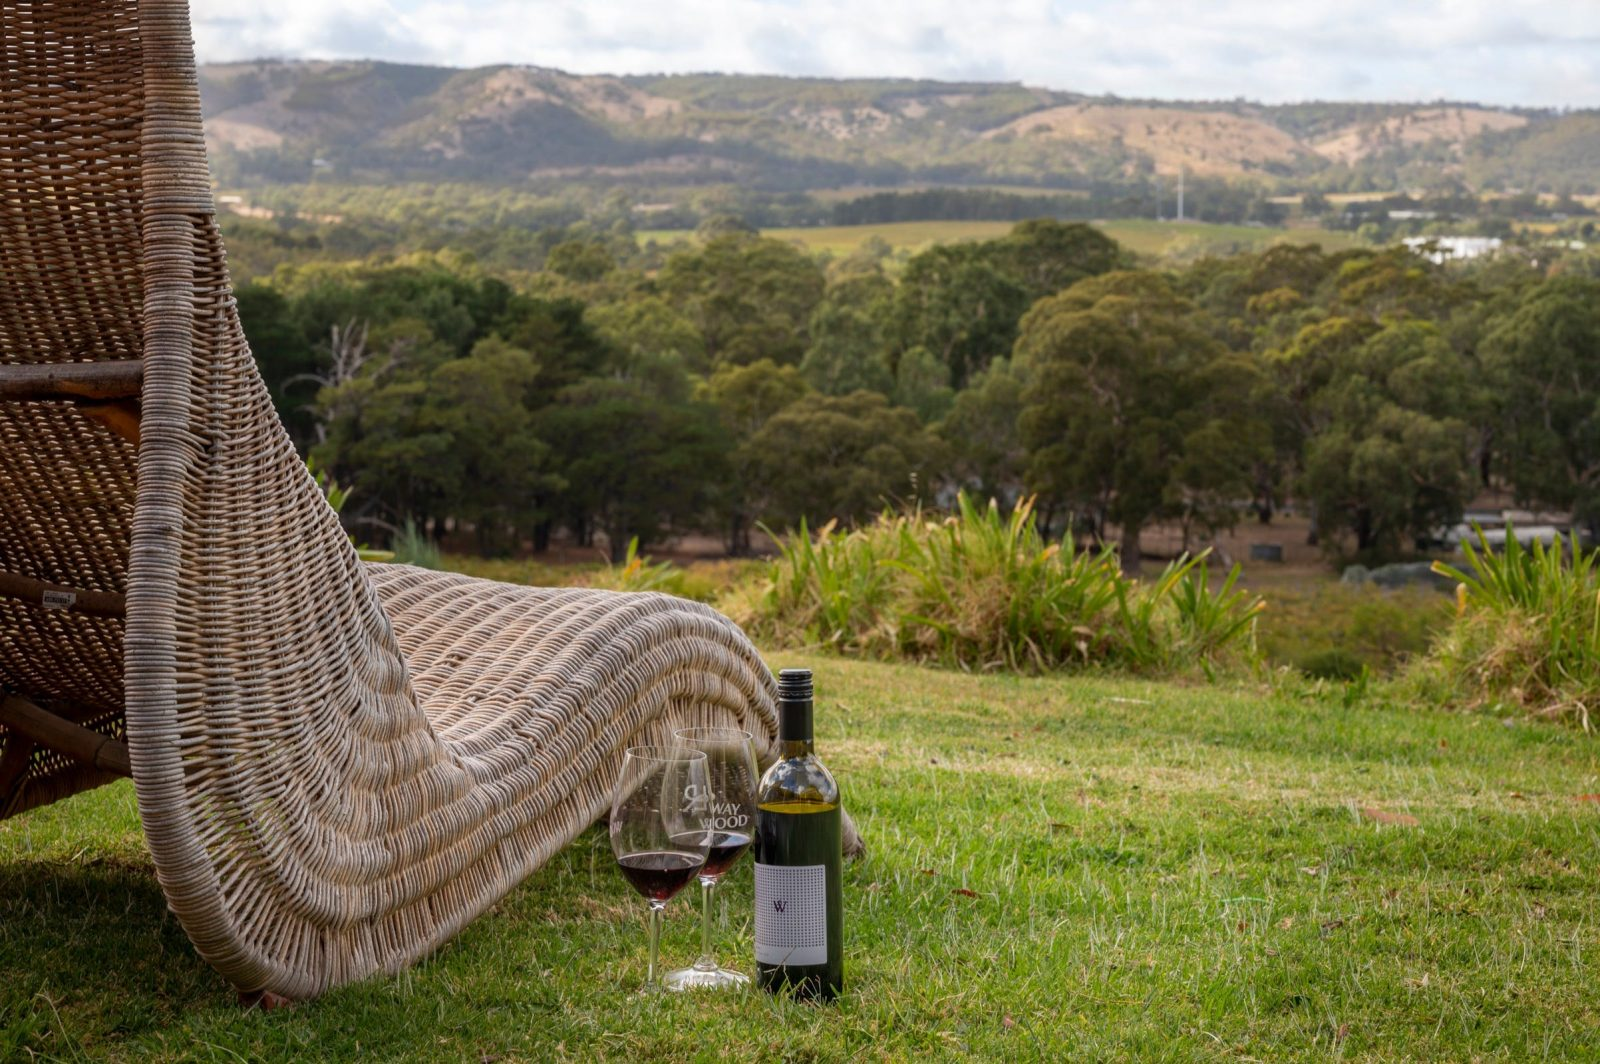 Just sit back and relax overlooking the vineyards and dramatic sellicks escarpment